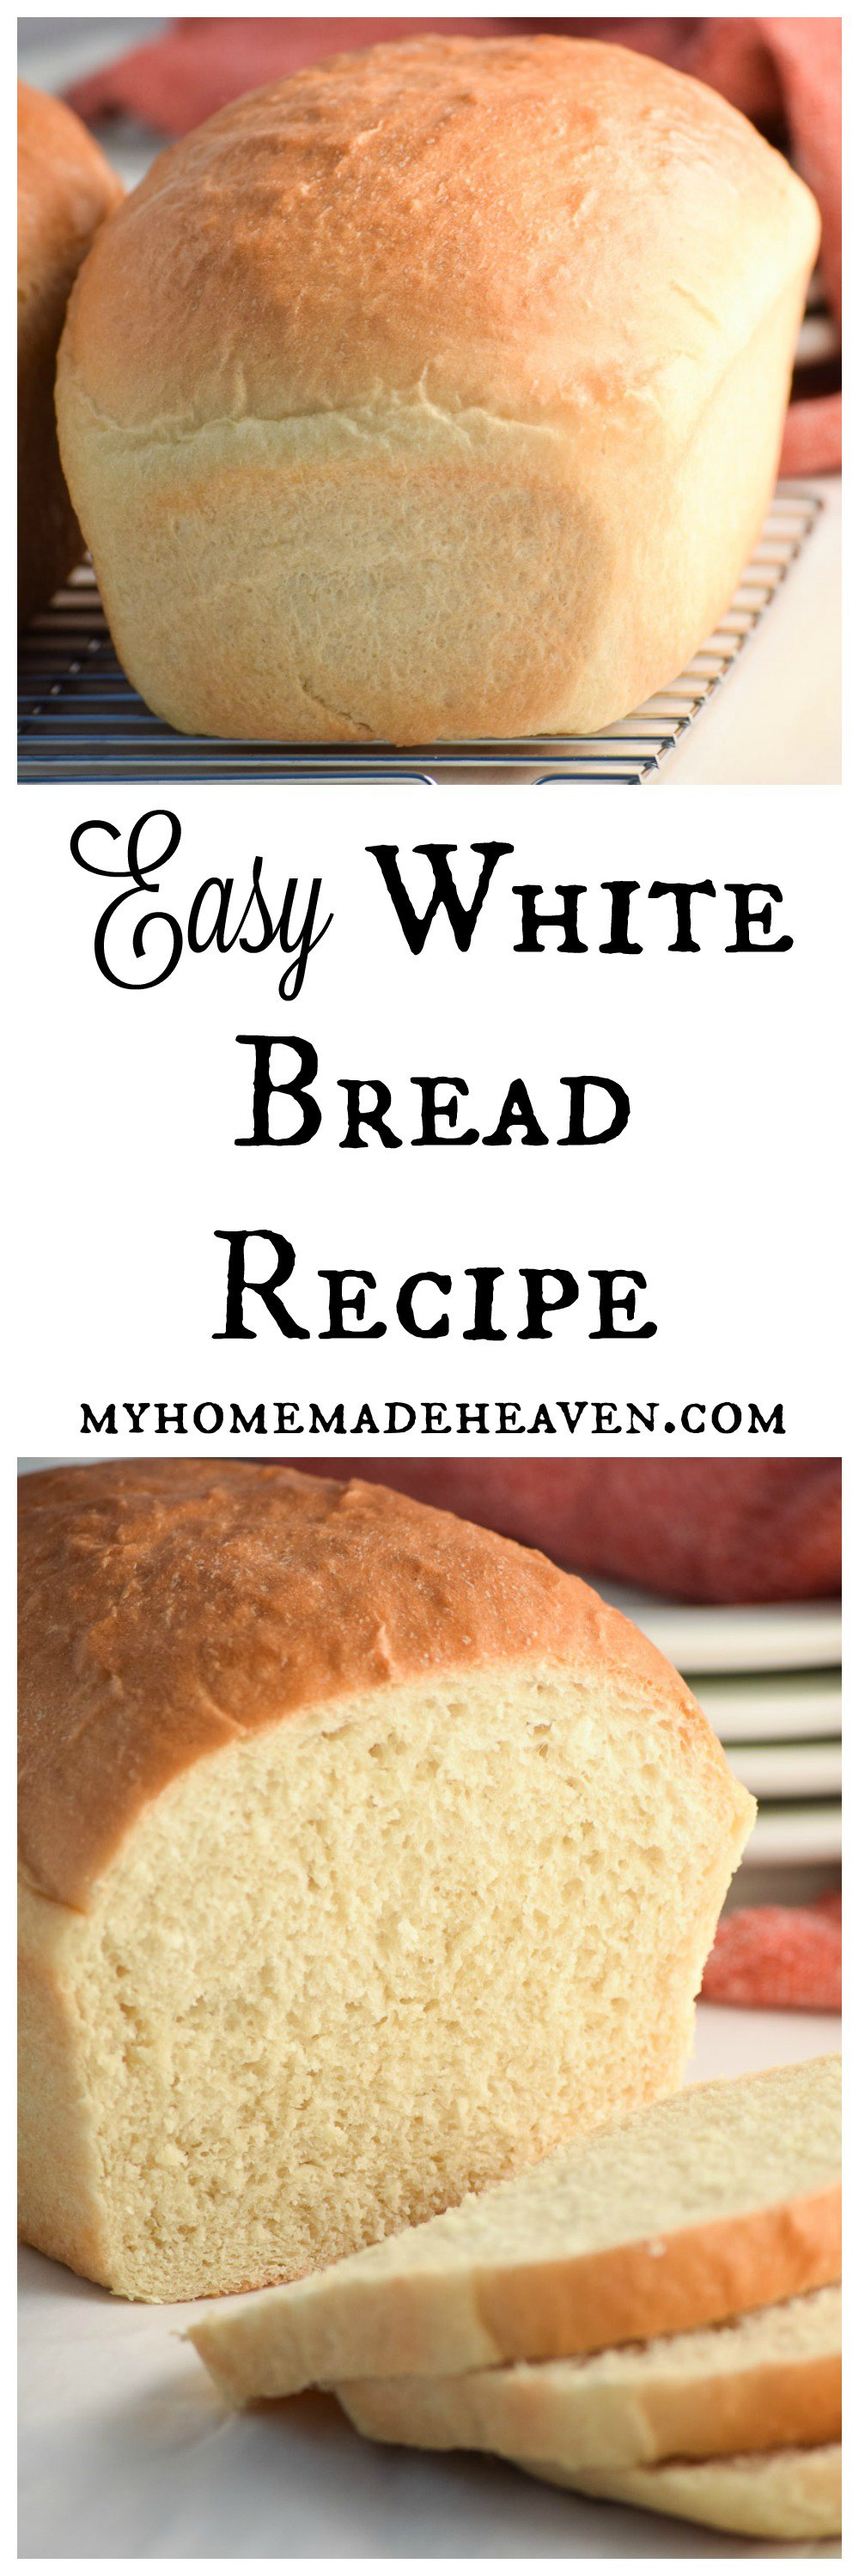 Easy White Bread Recipe - My Homemade Heaven